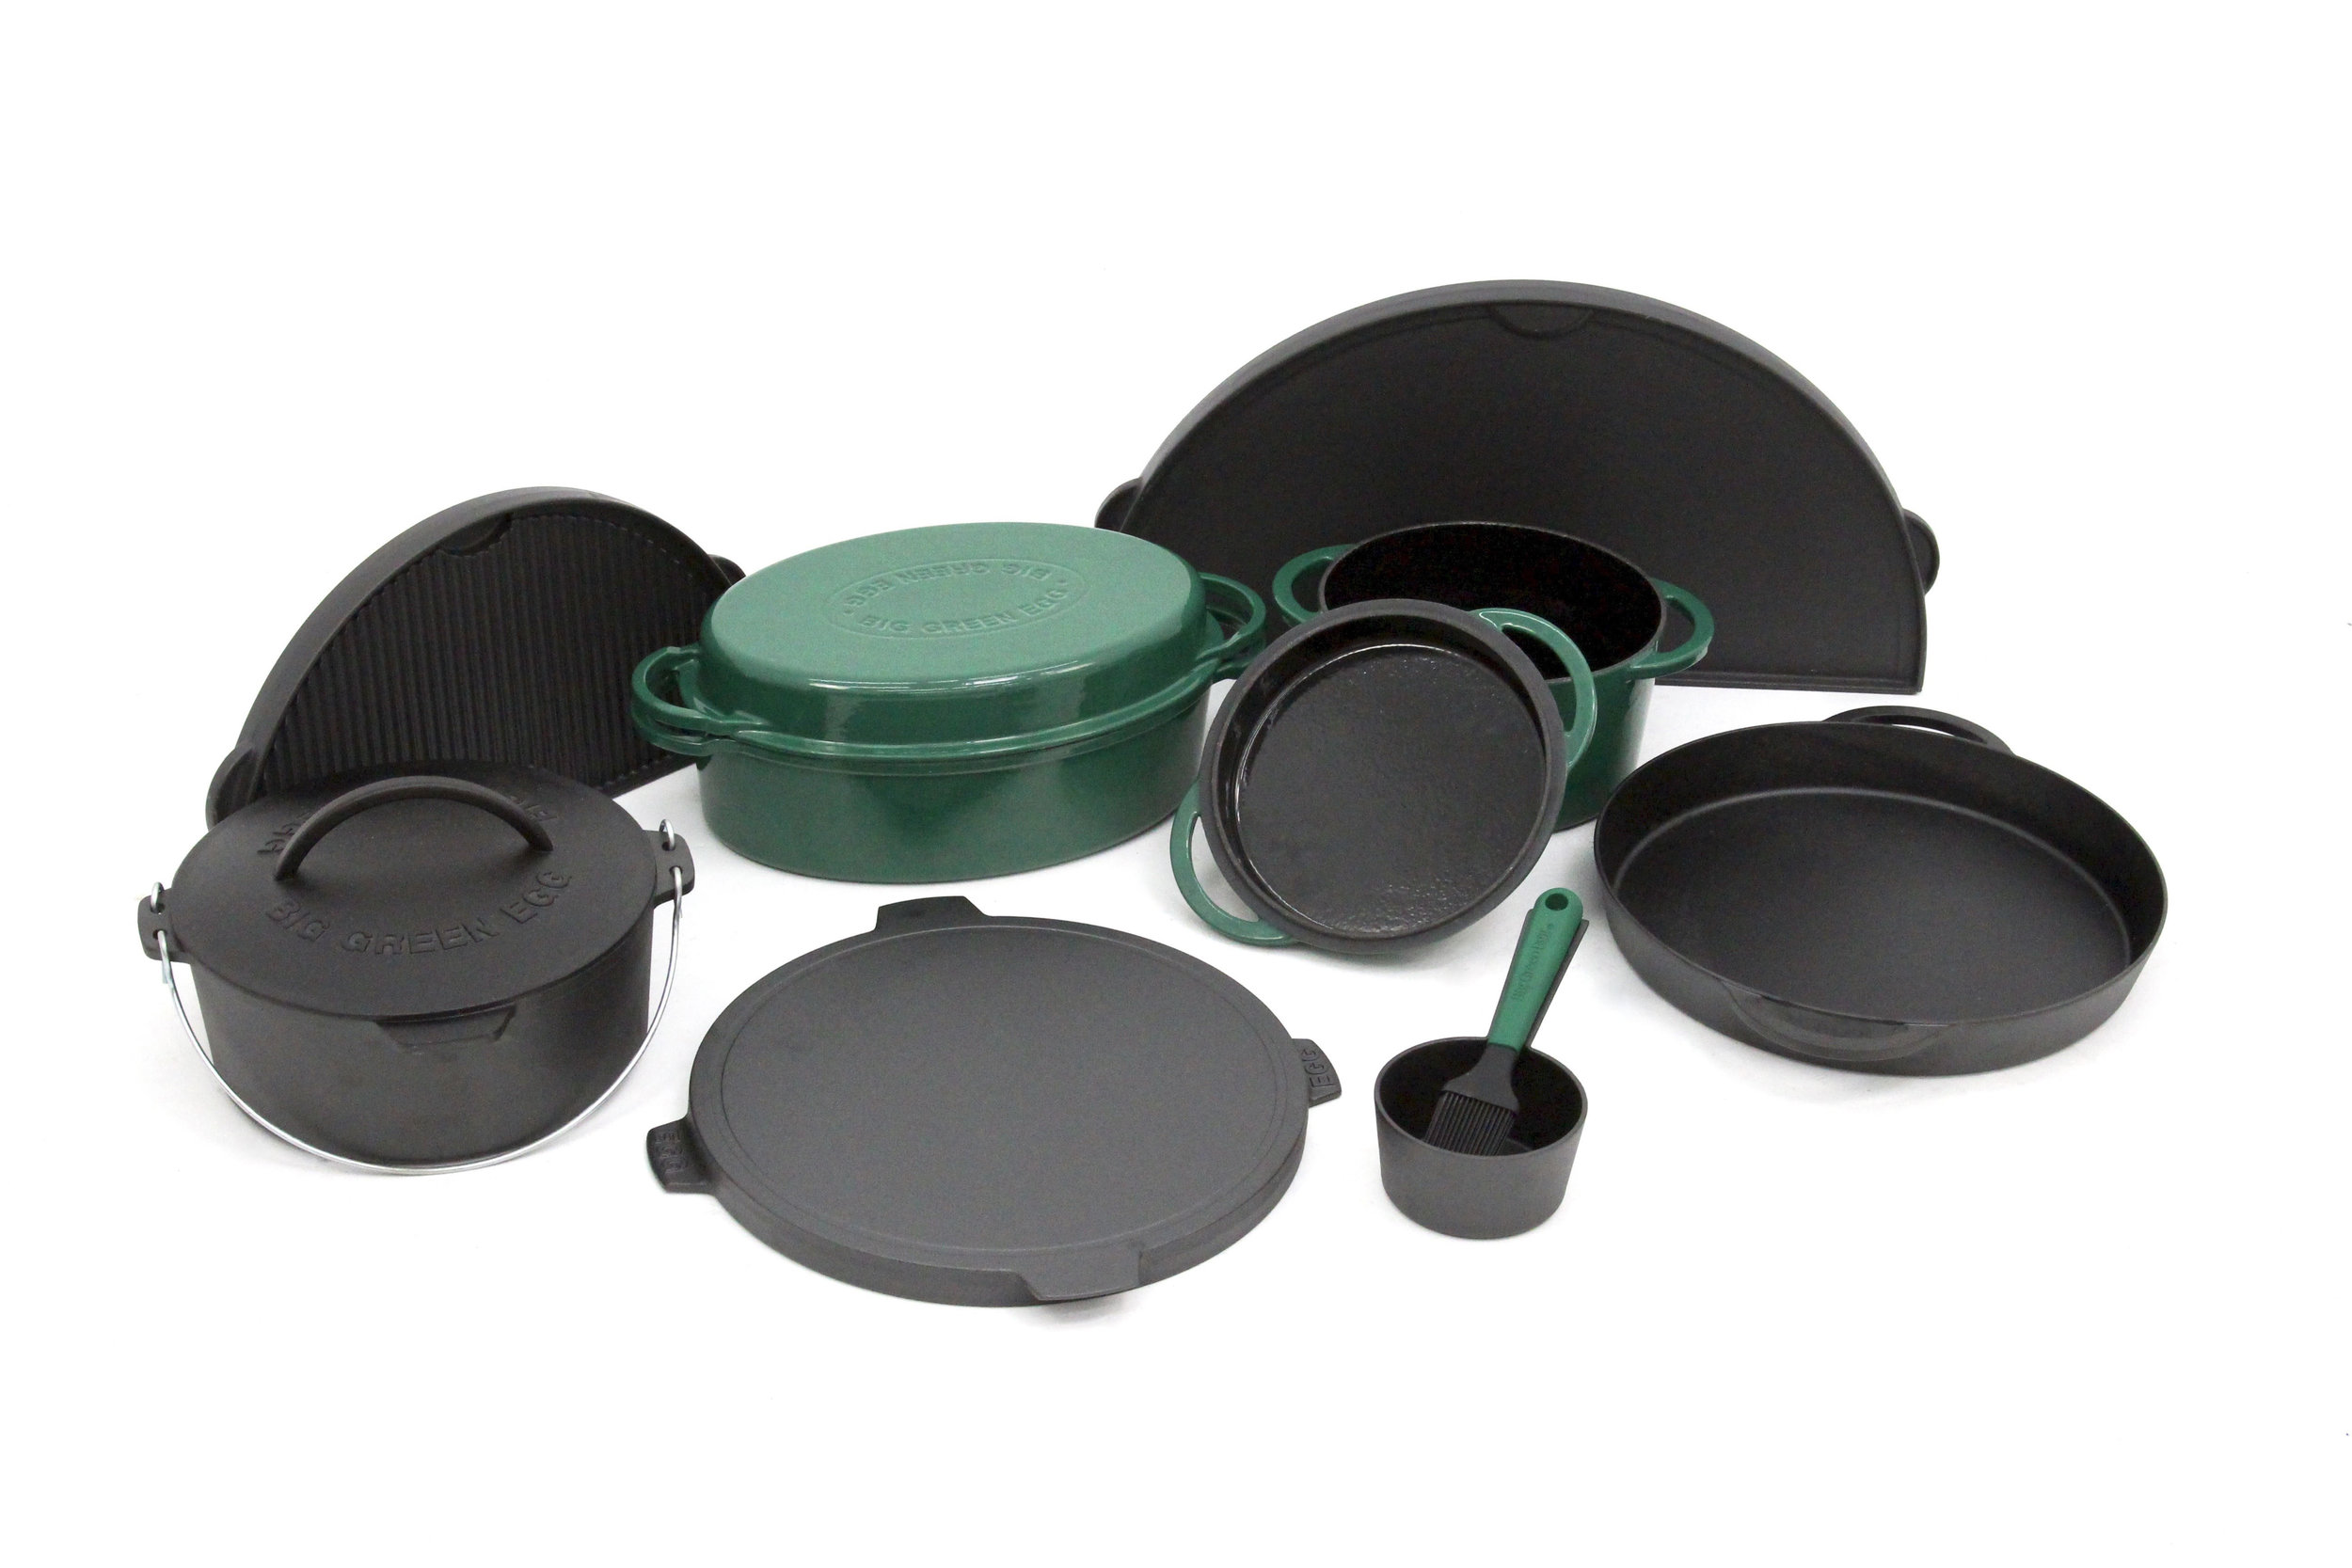 The entire cast iron lineup was redesigned to communicate a more cohesive brand language at the retail level.